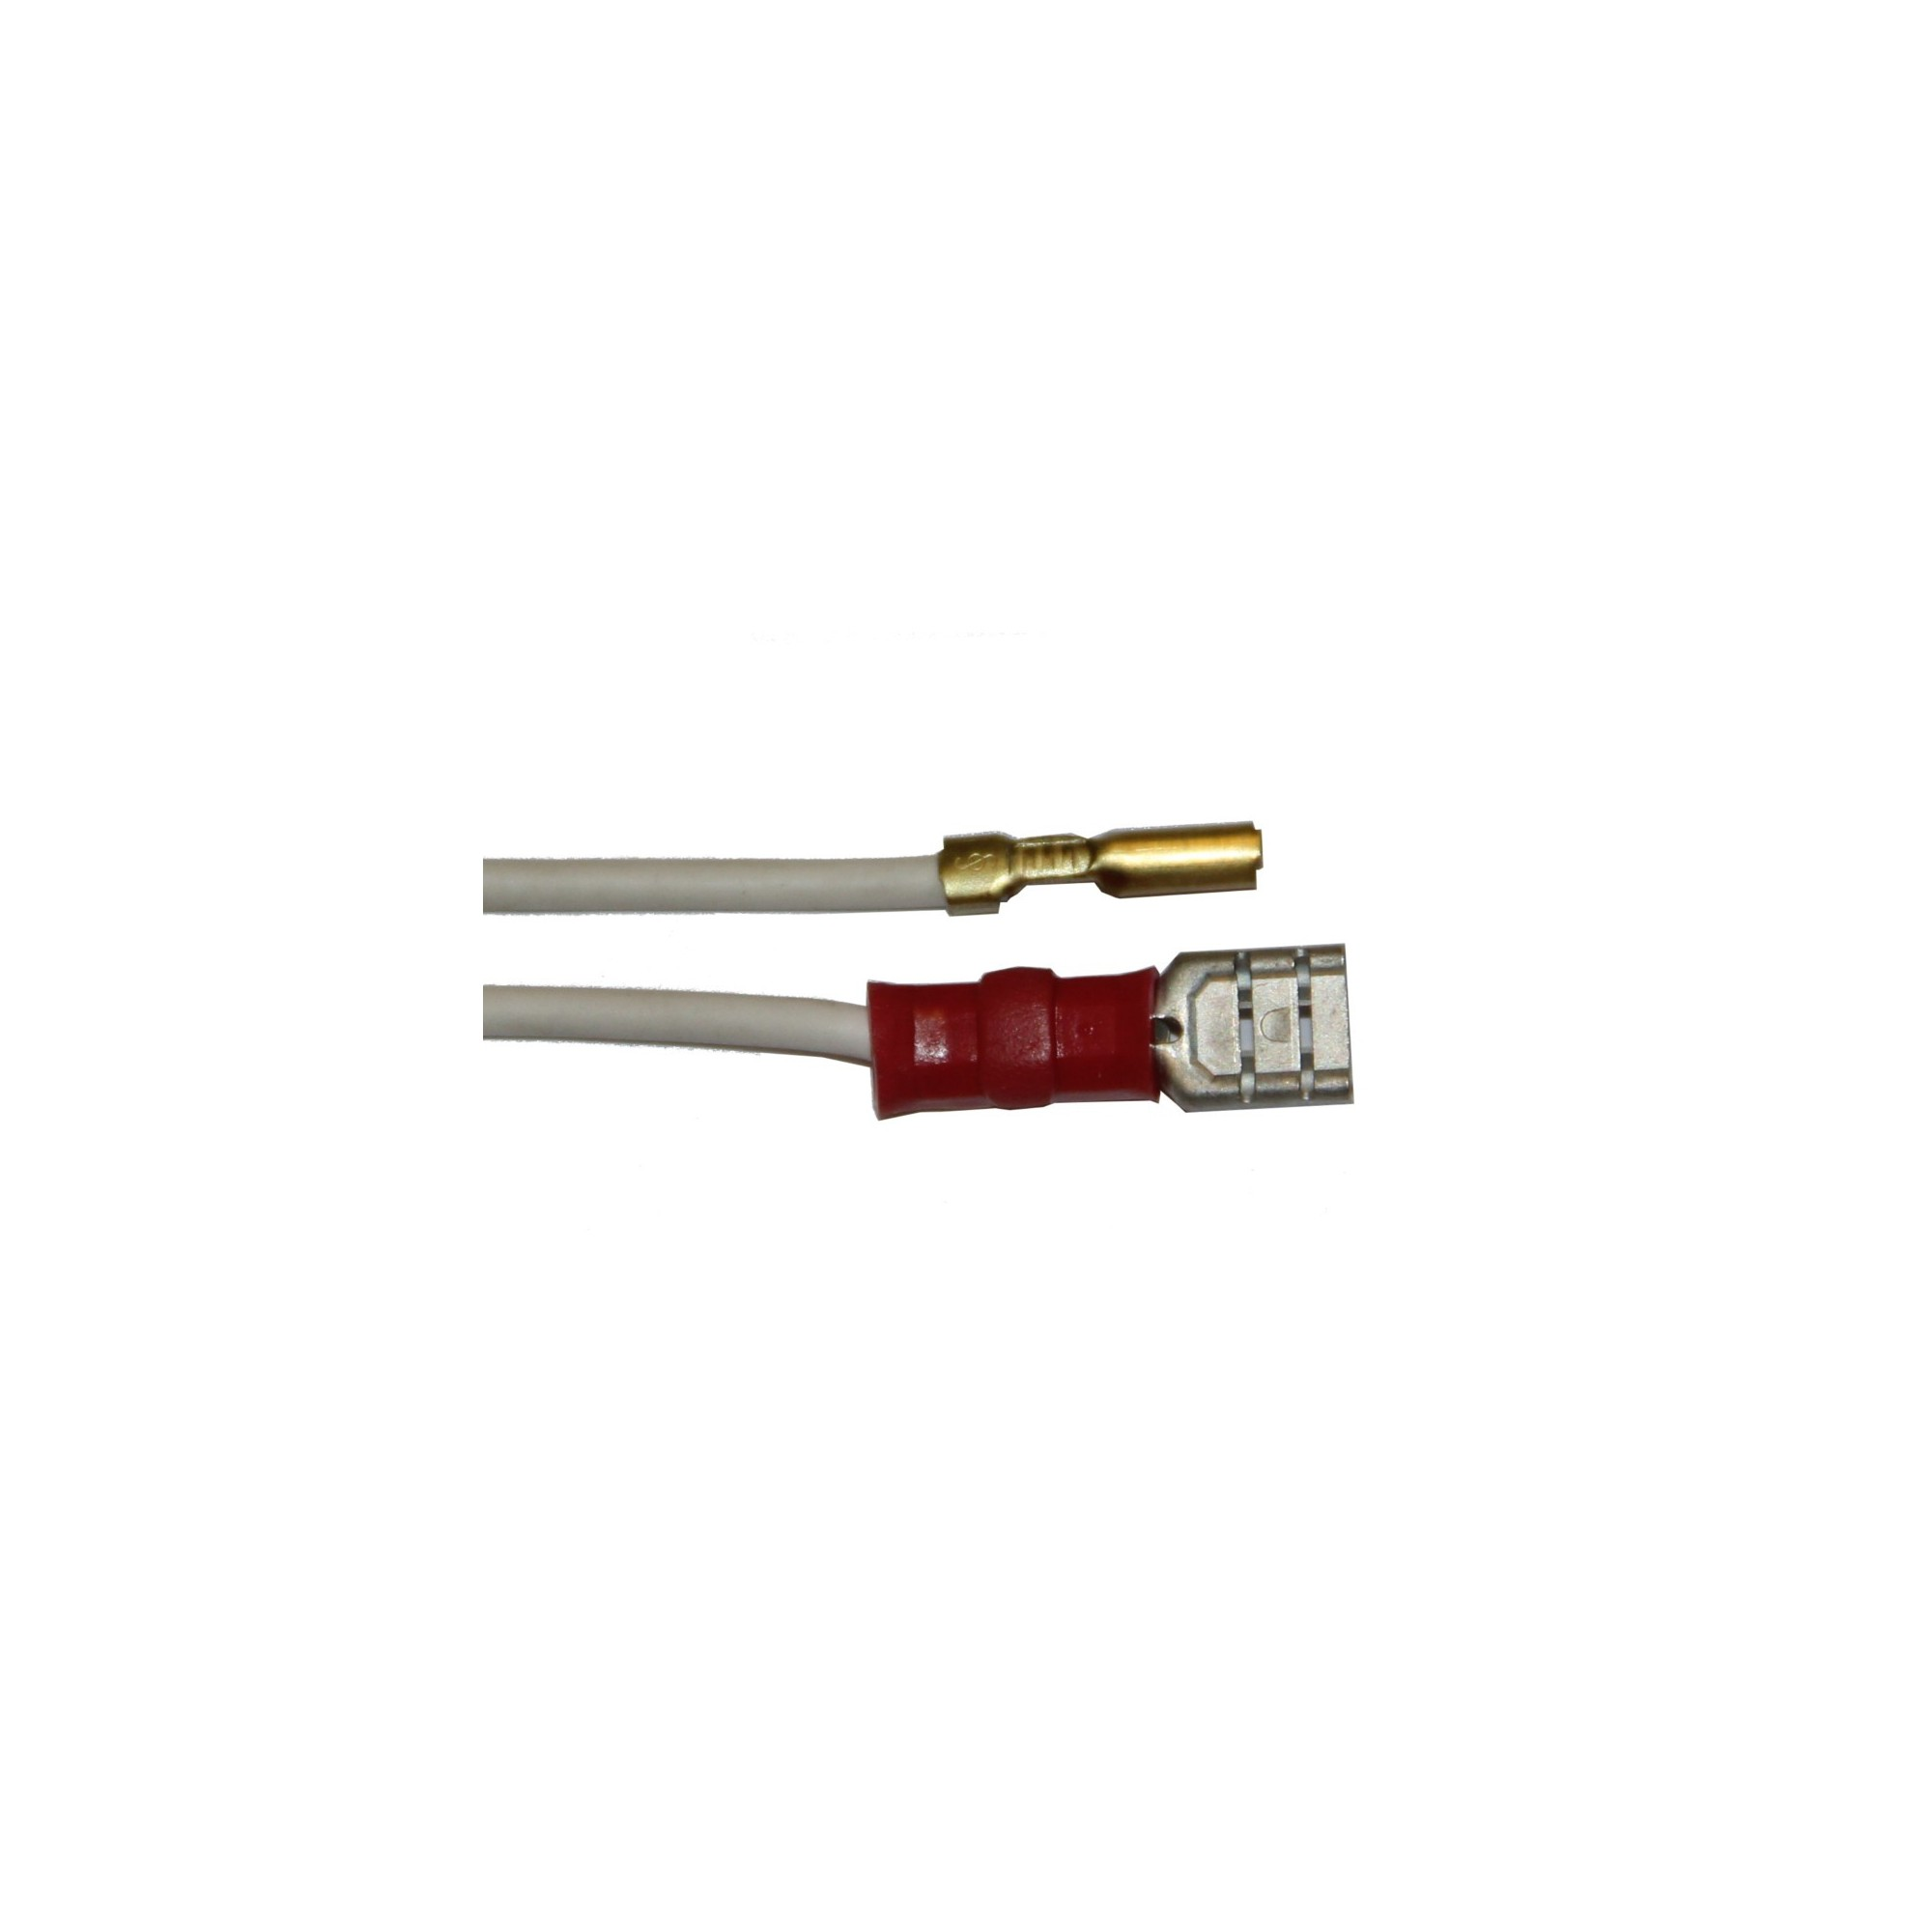 IONISATION CABLE 500MM